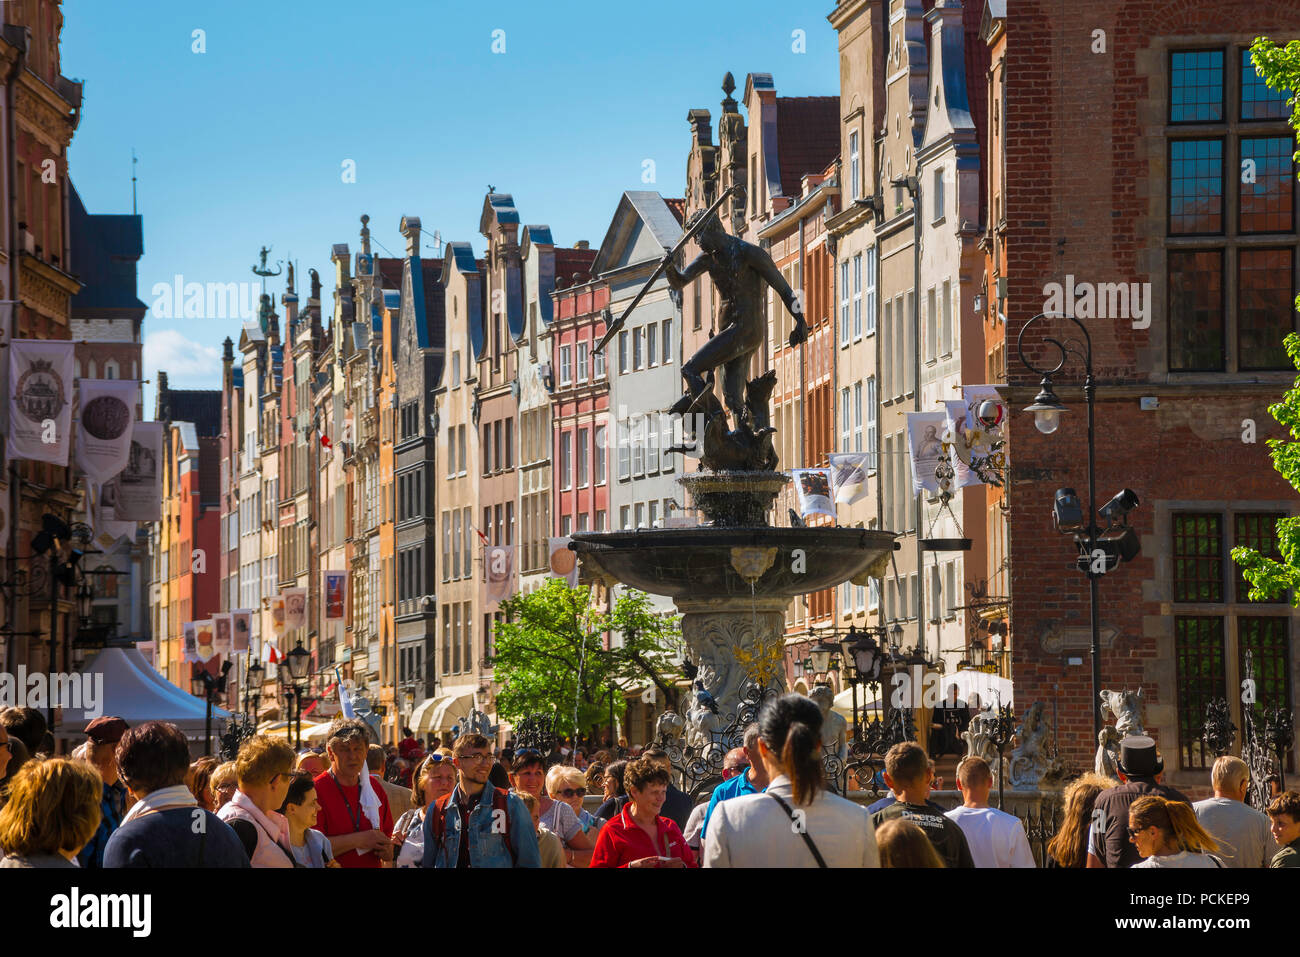 Gdansk Poland city, view along the Royal Way - the main street in the center of Gdansk on a busy summer afternoon, Pomerania, Poland. Stock Photo